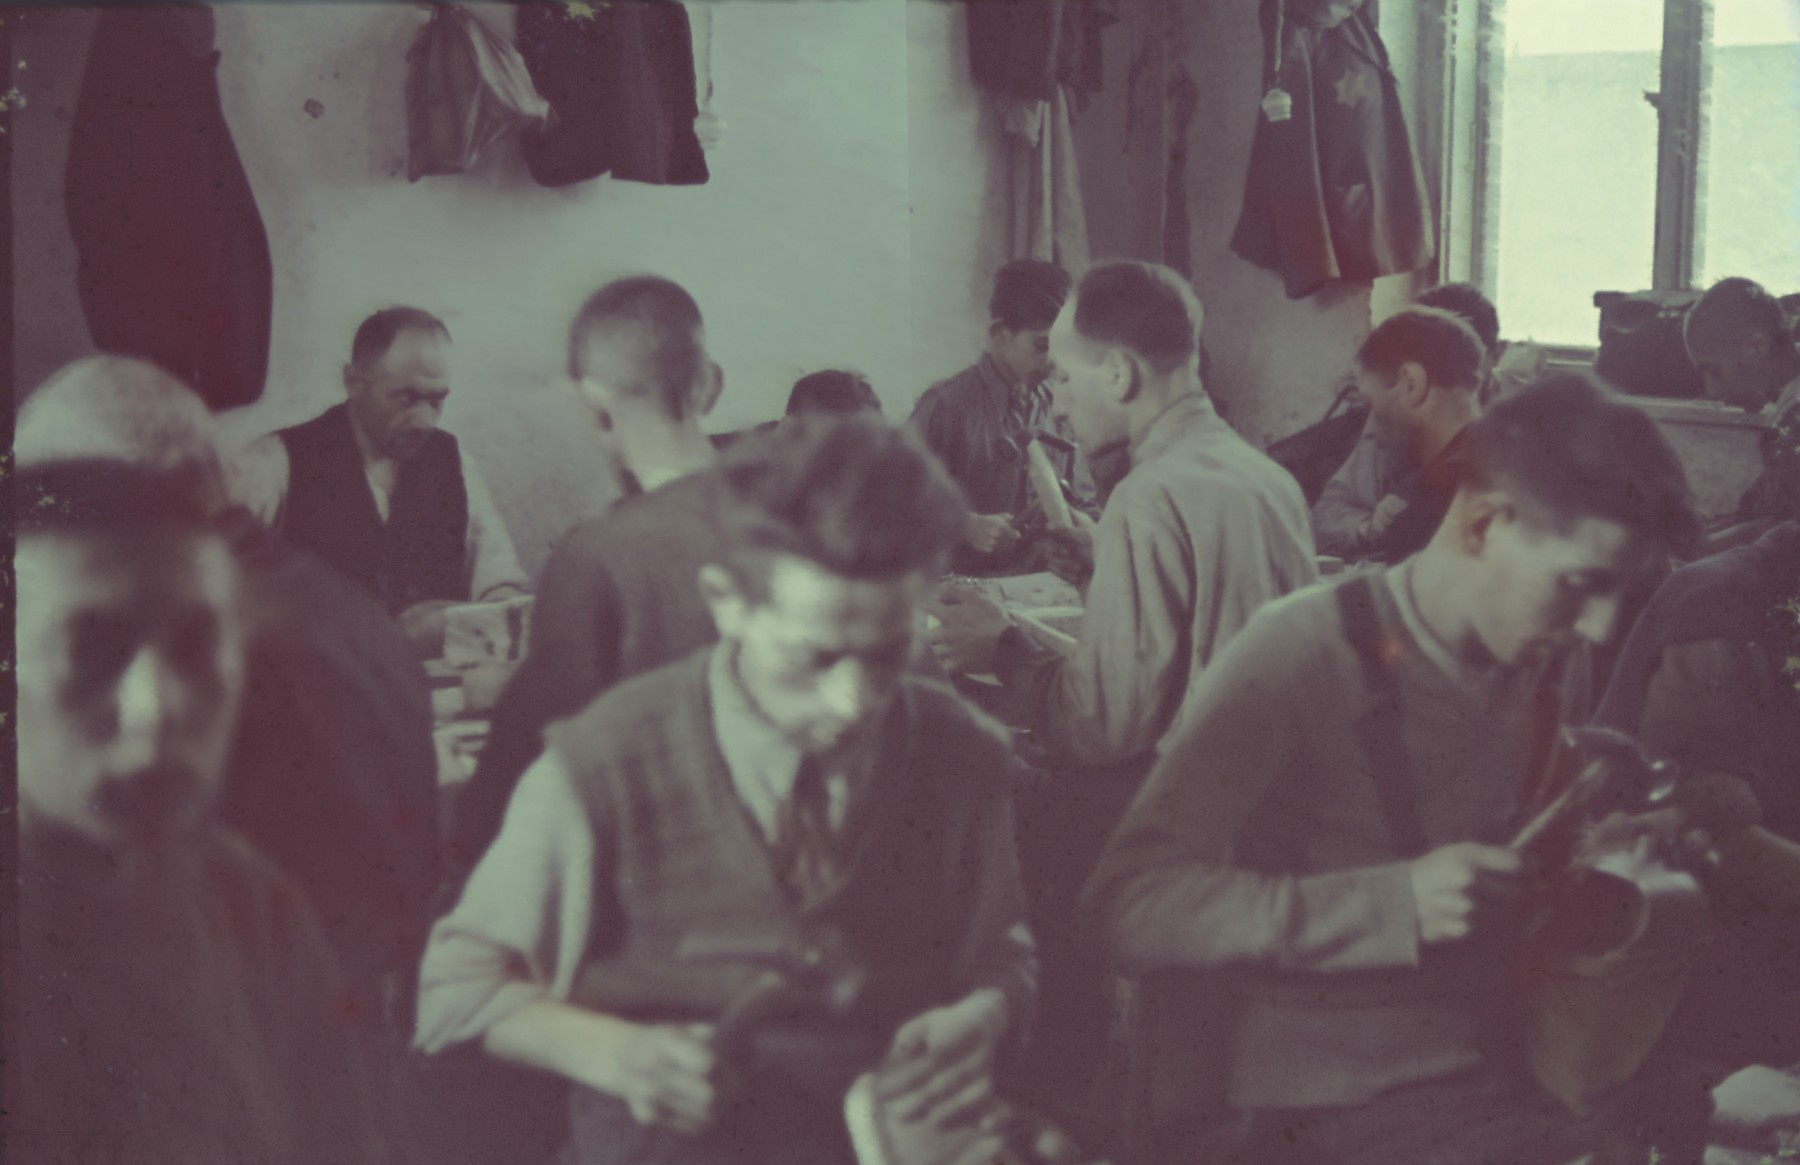 Jewish men at work in a shoemaking workshop.  Original German caption: Litzmannstadt ghetto, Schusterei (shoe-making).